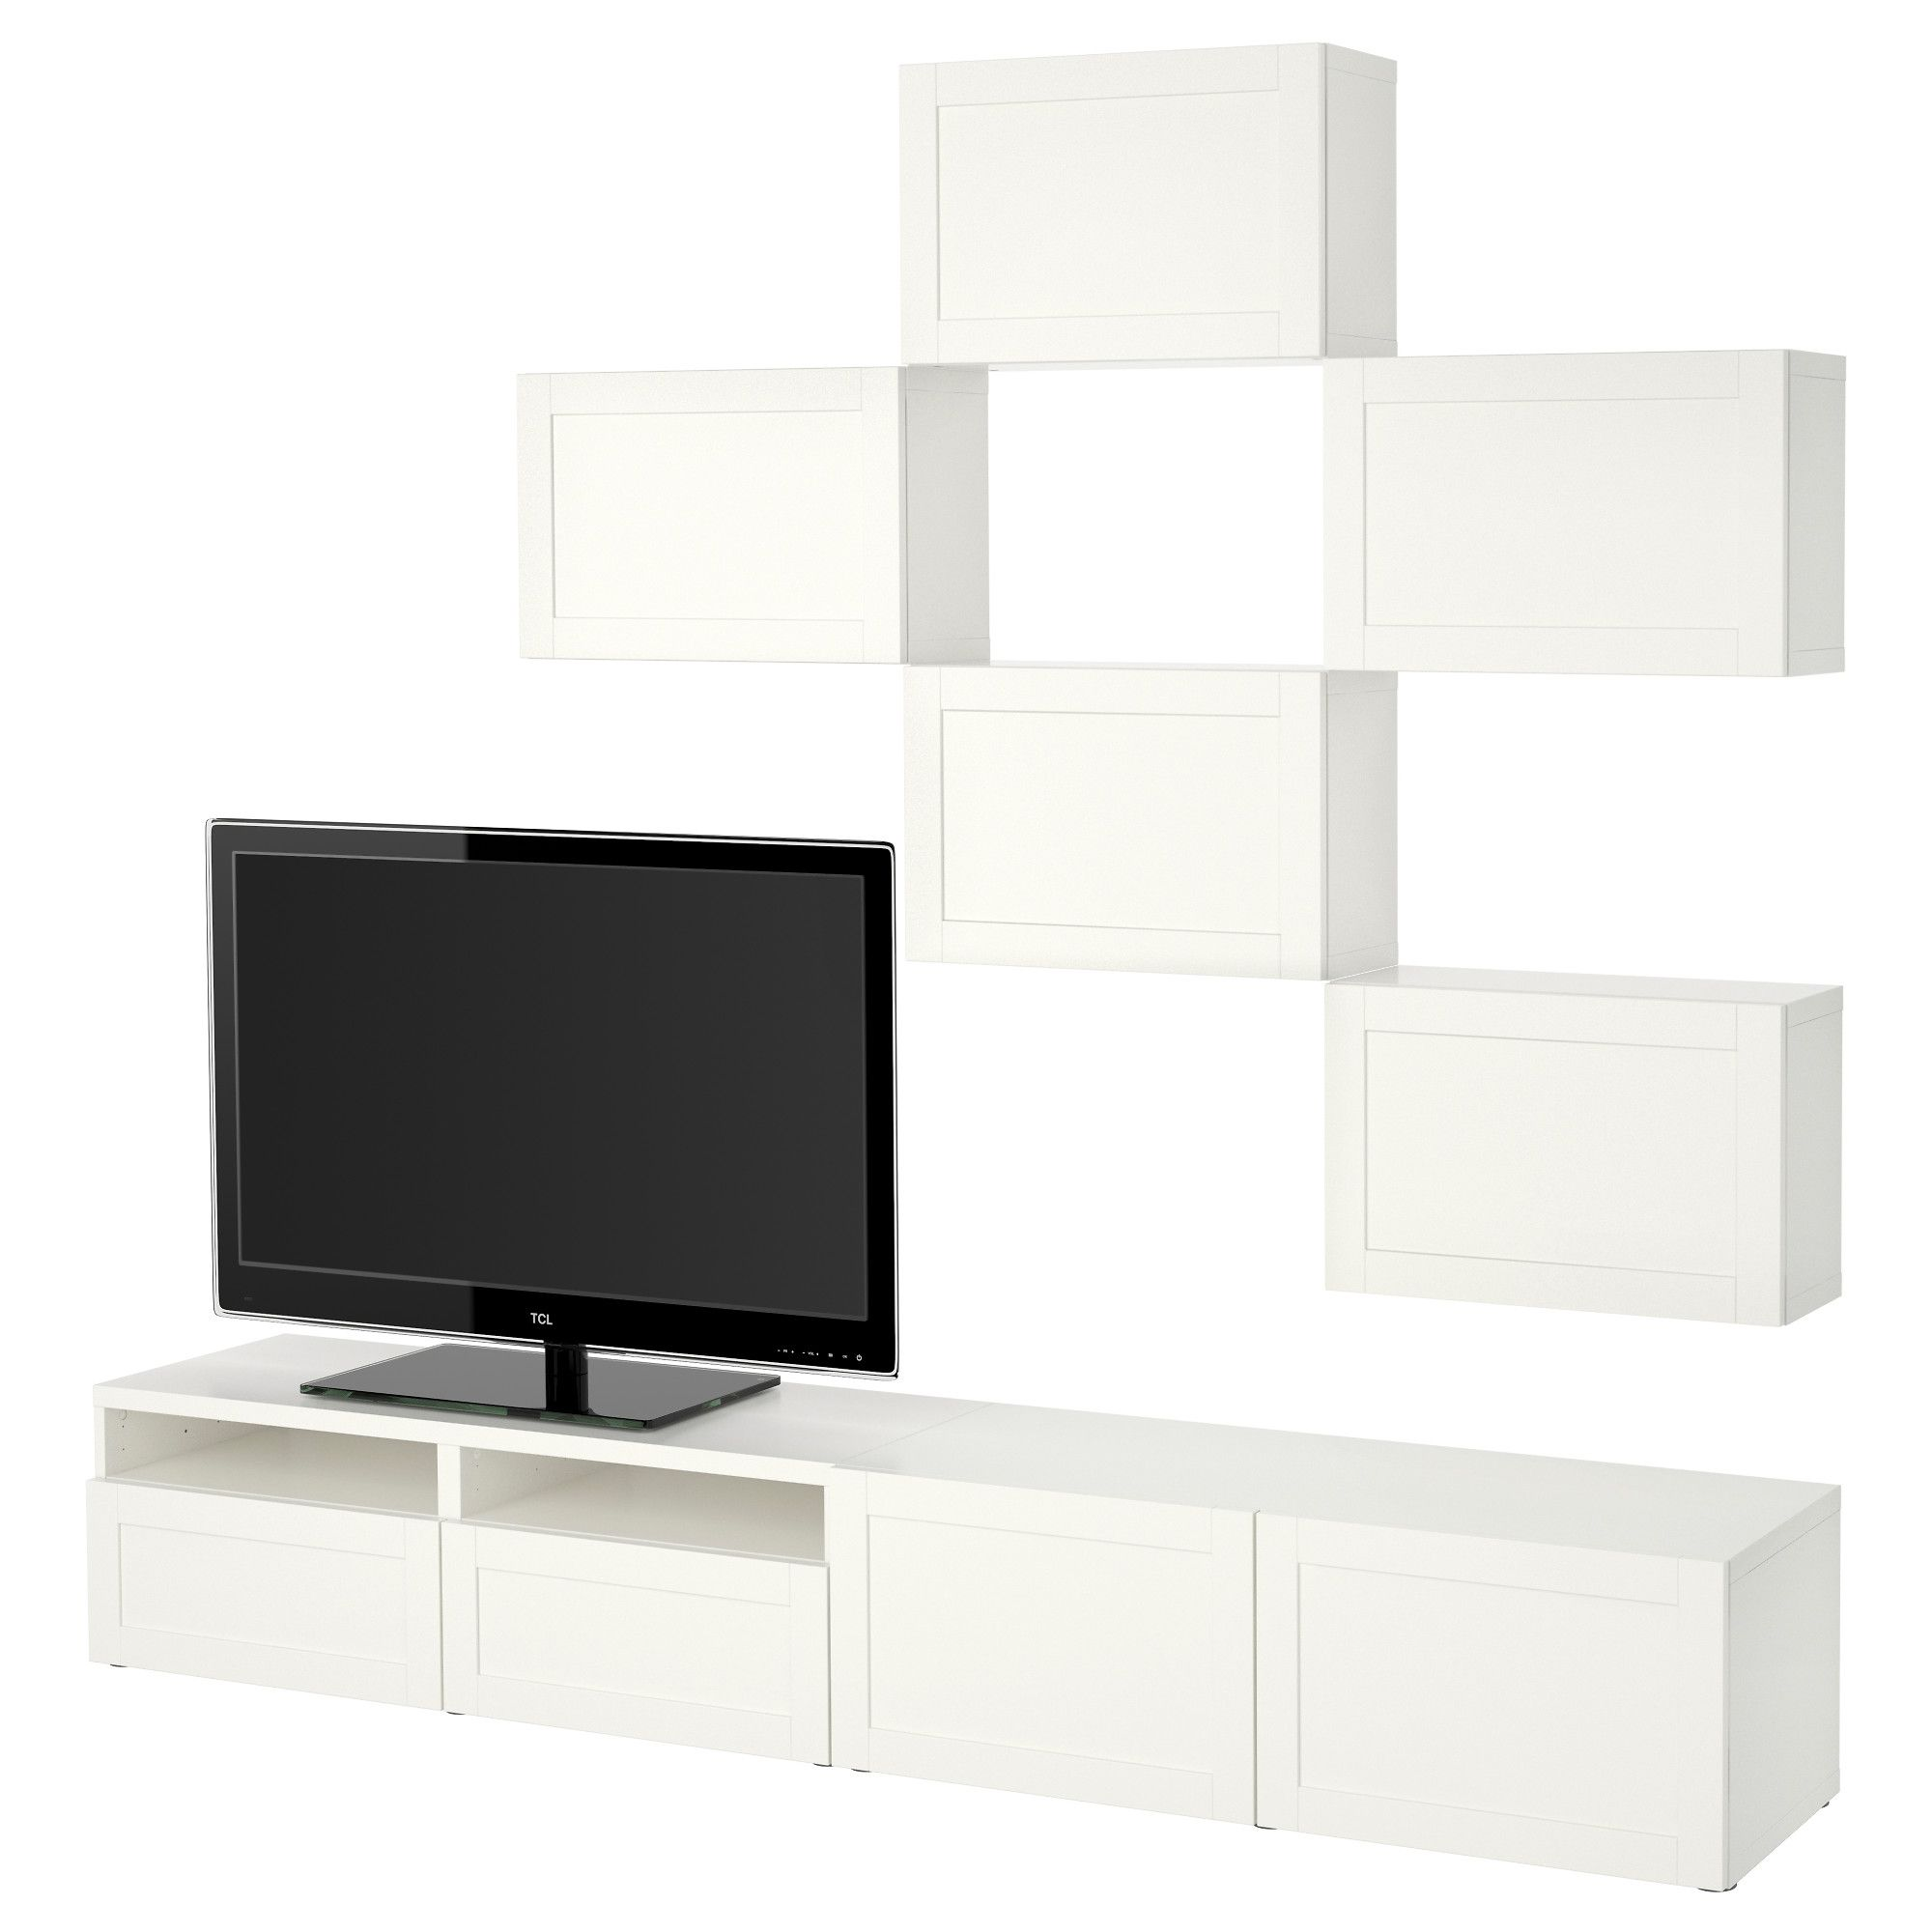 Wand Tv Closings Ikea BestÅ Tv Storage Combination Decor In 2019 Tv Storage